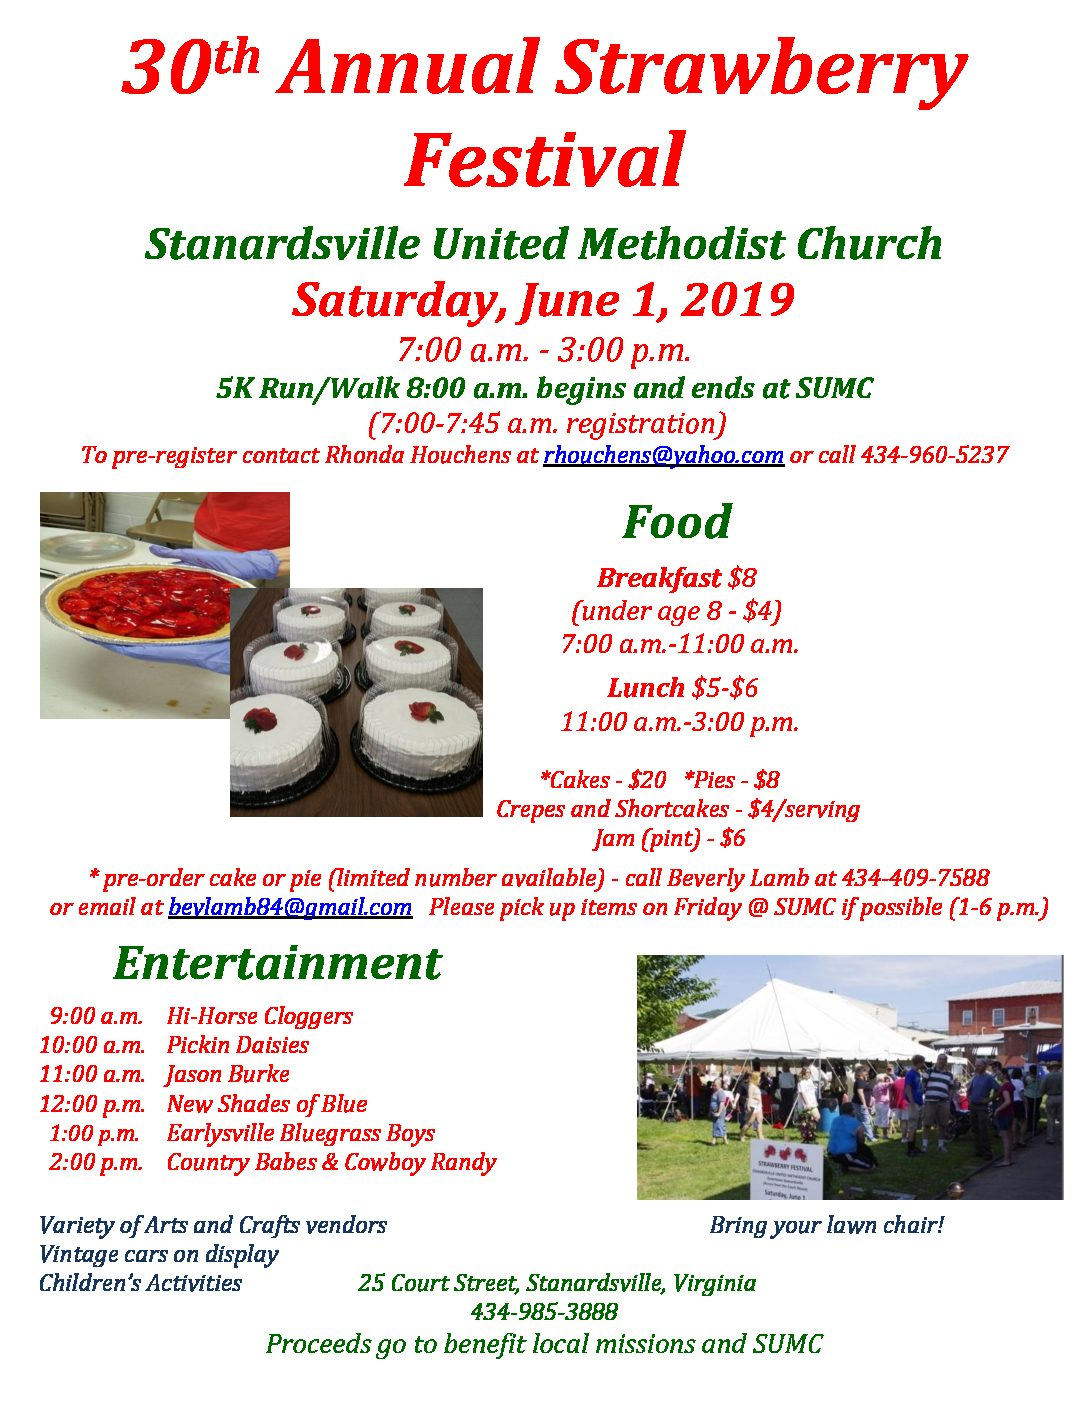 Strawberry Festival, 5K Run/Walk, Saturday June 1.